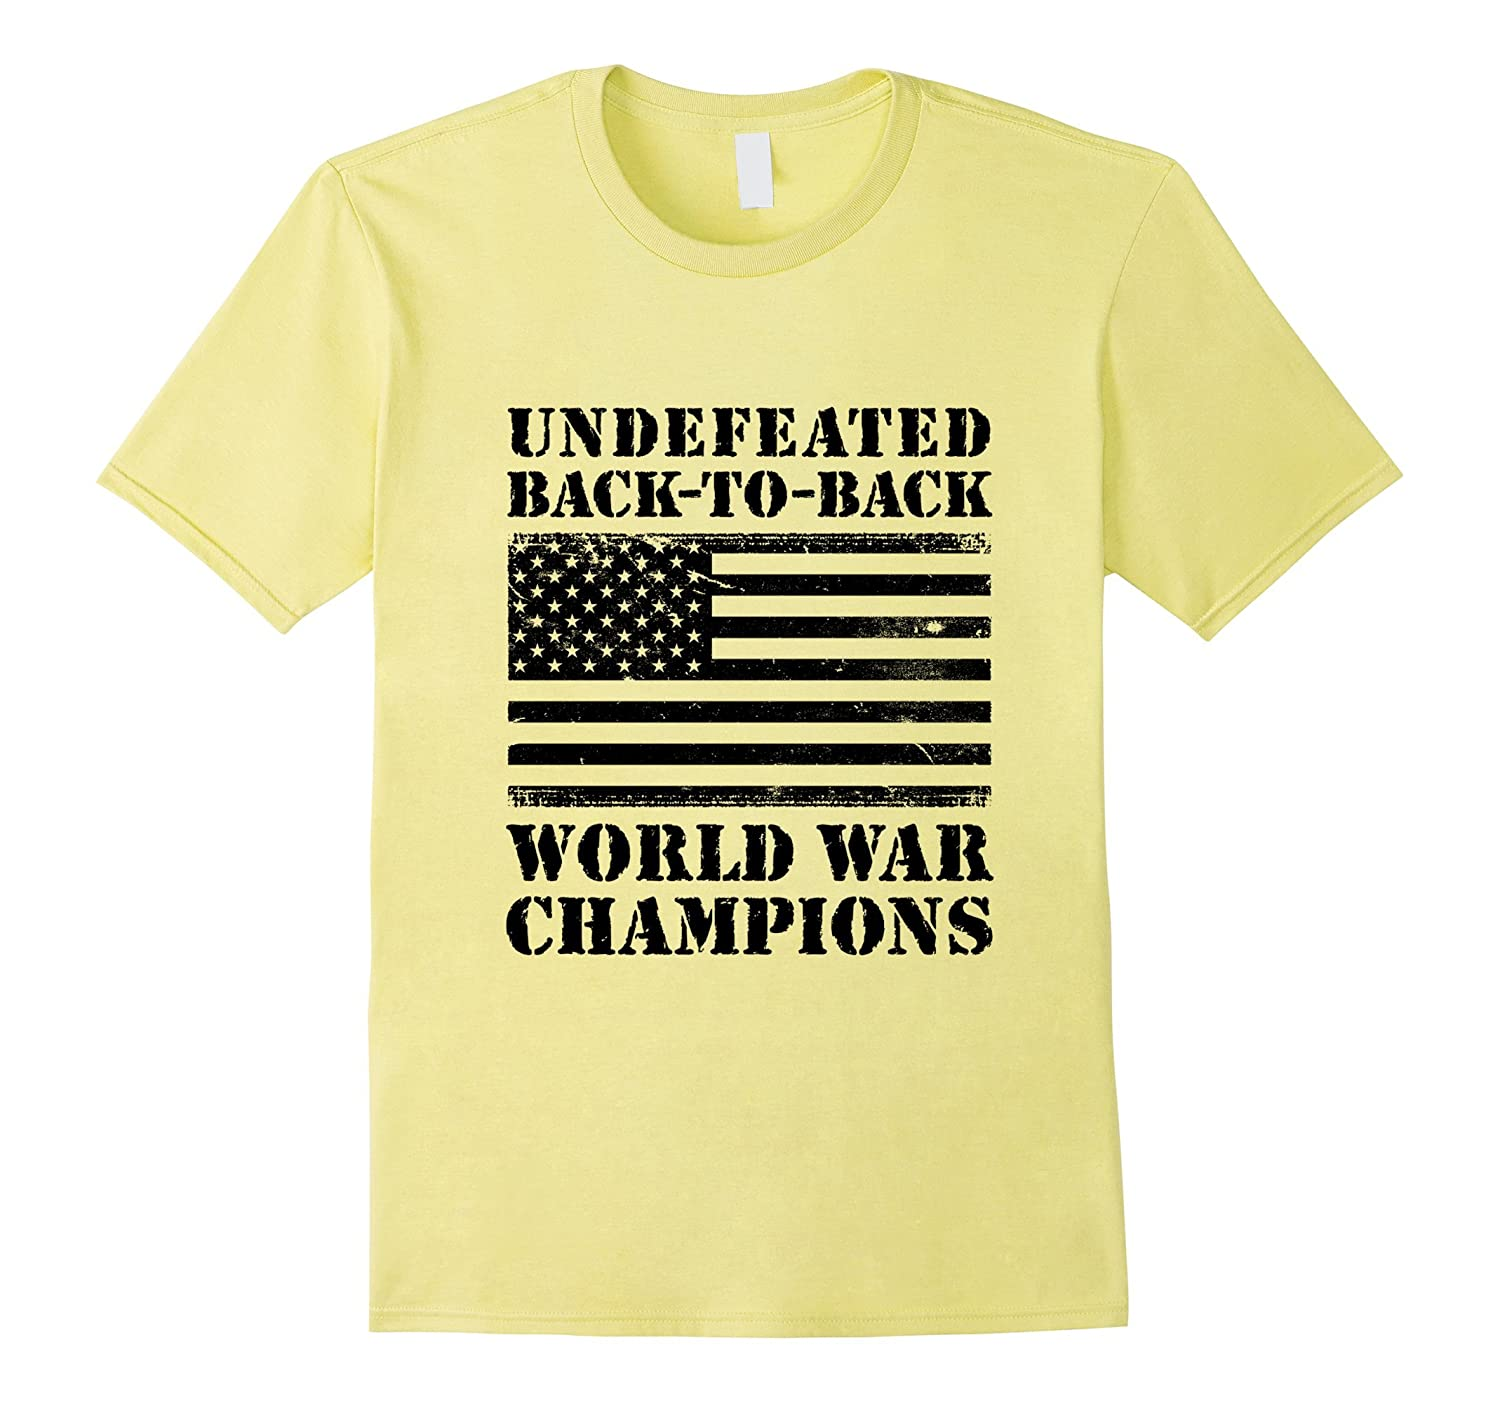 2890728b0 Undefeated Back-To-Back World War Champions T-shirt-CL – Colamaga